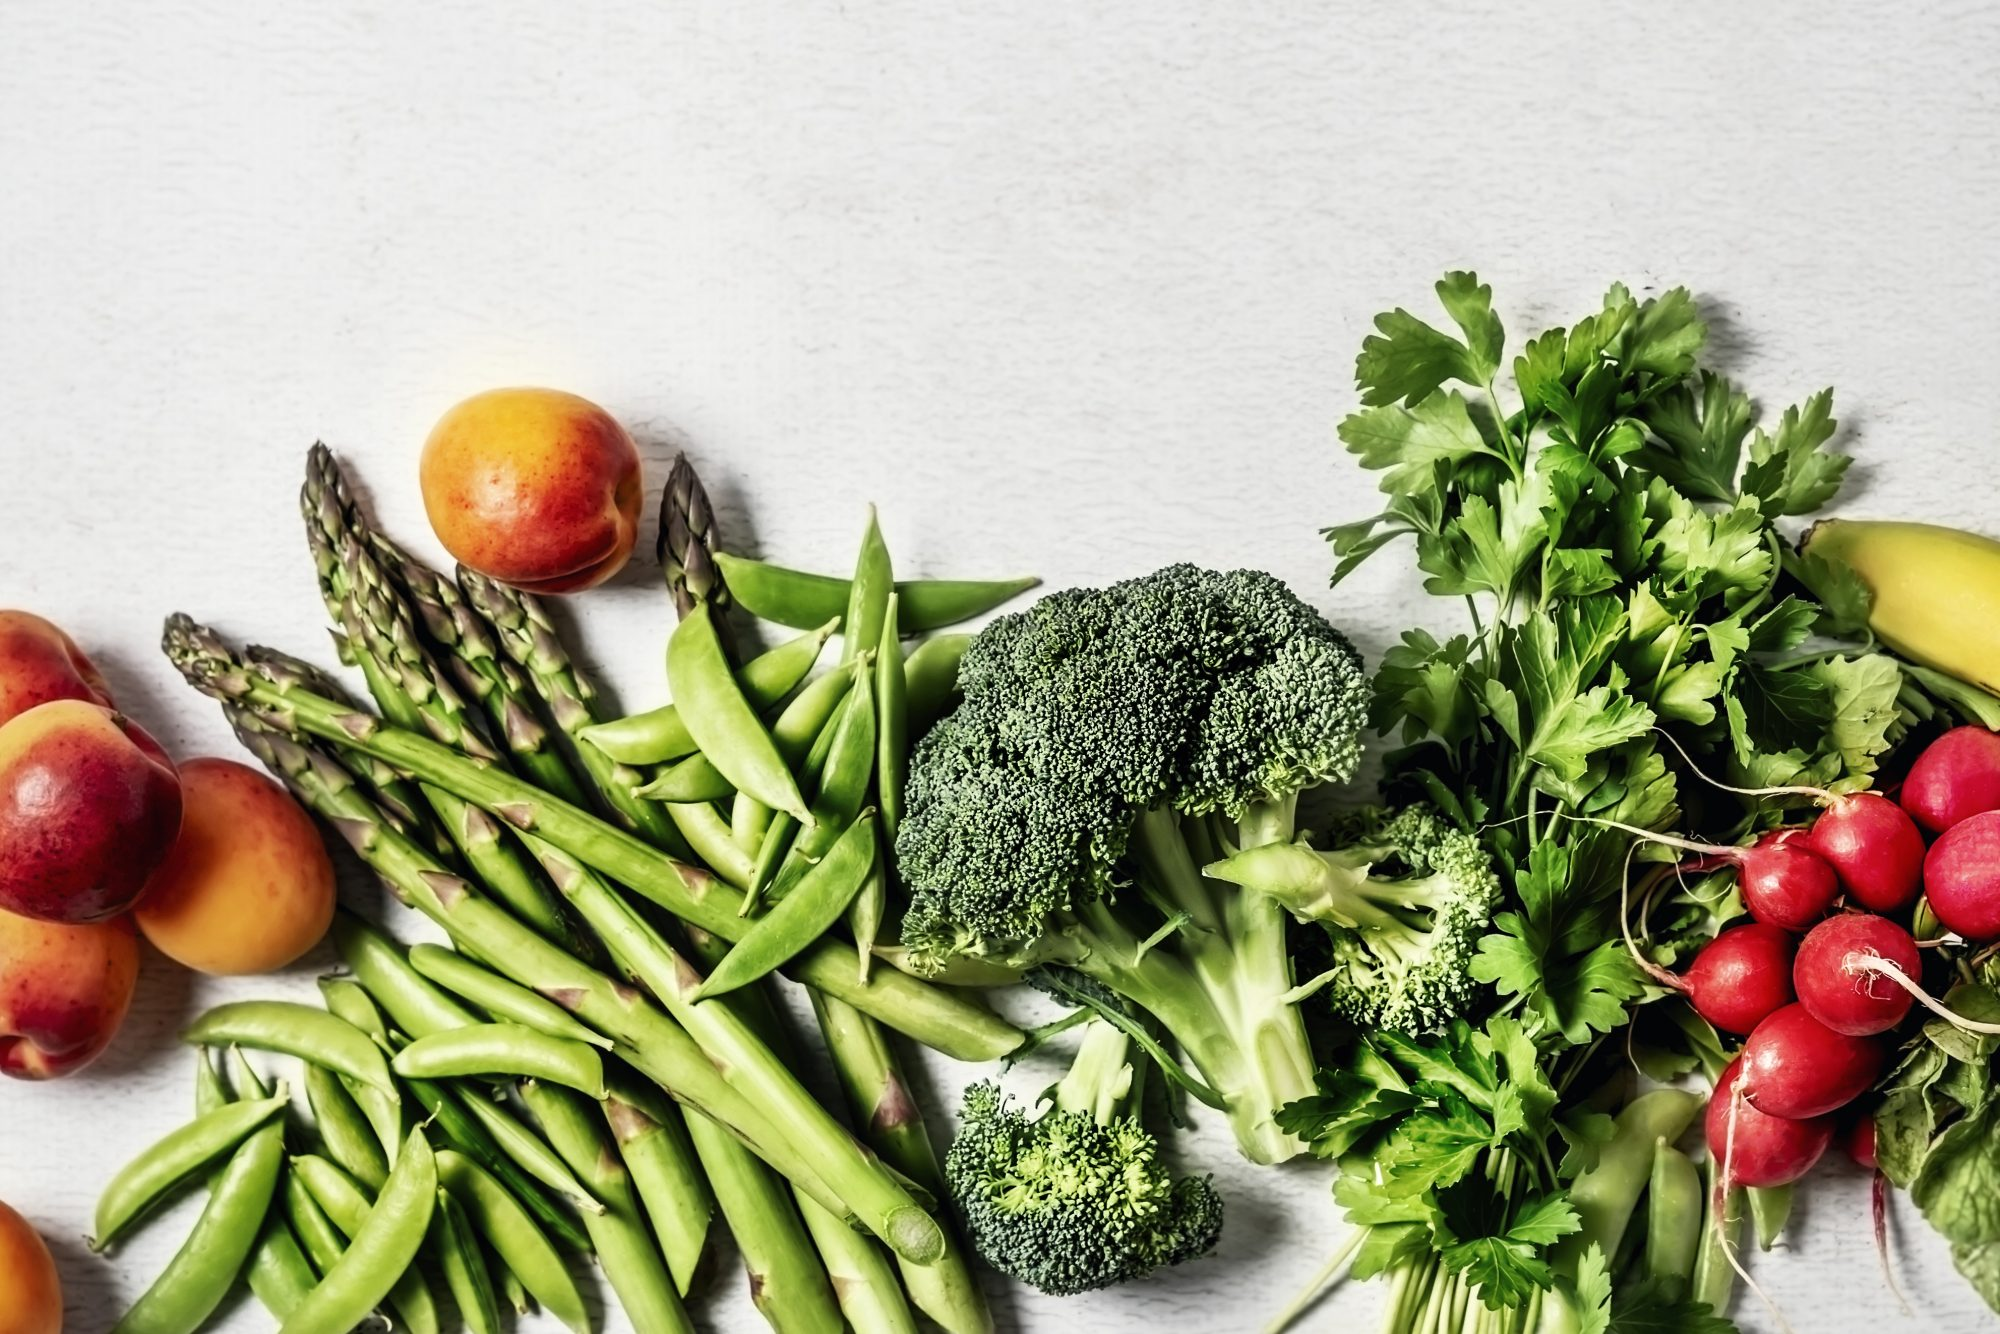 Fresh vegetables and fruits on white background